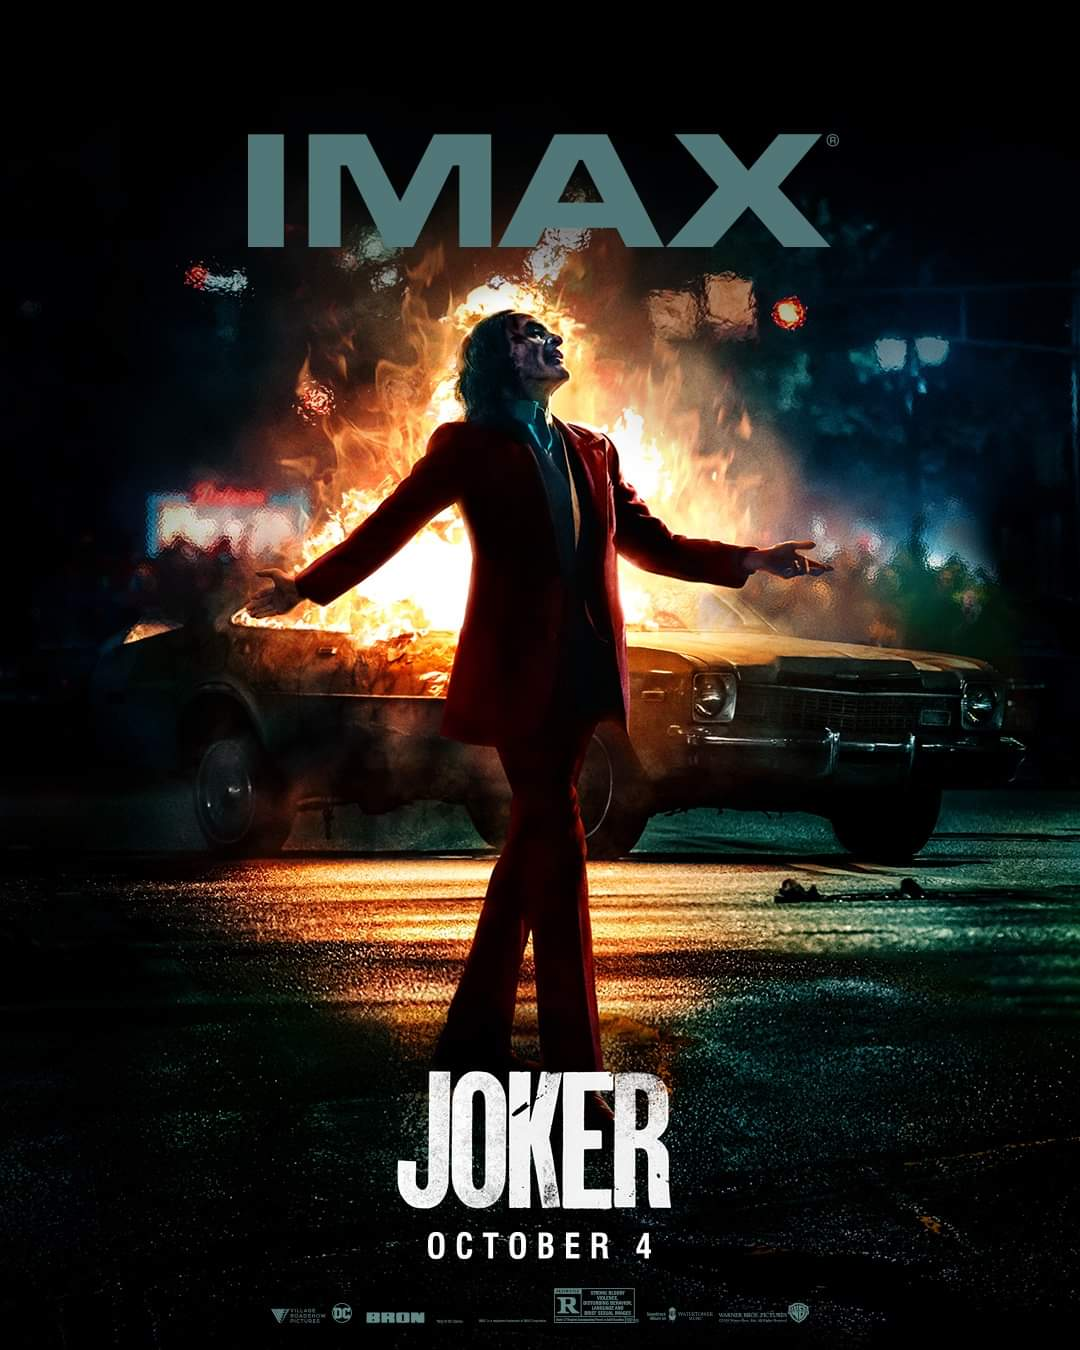 Joker IMAX Poster Shows A City In Chaos